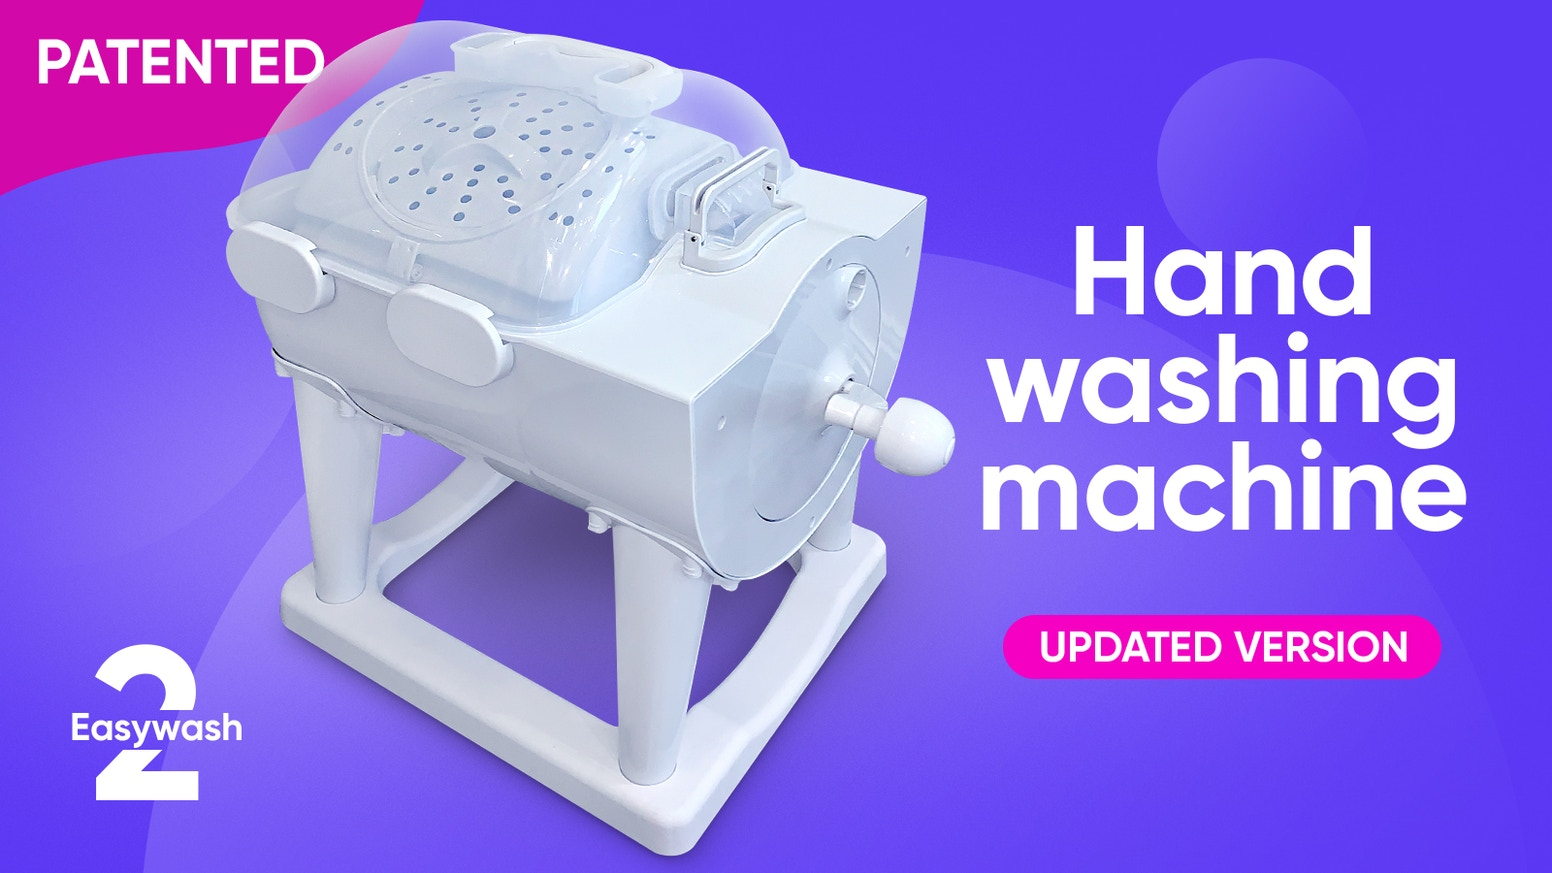 The manual washing machine and dryer for simple and thorough was in 5 minutes